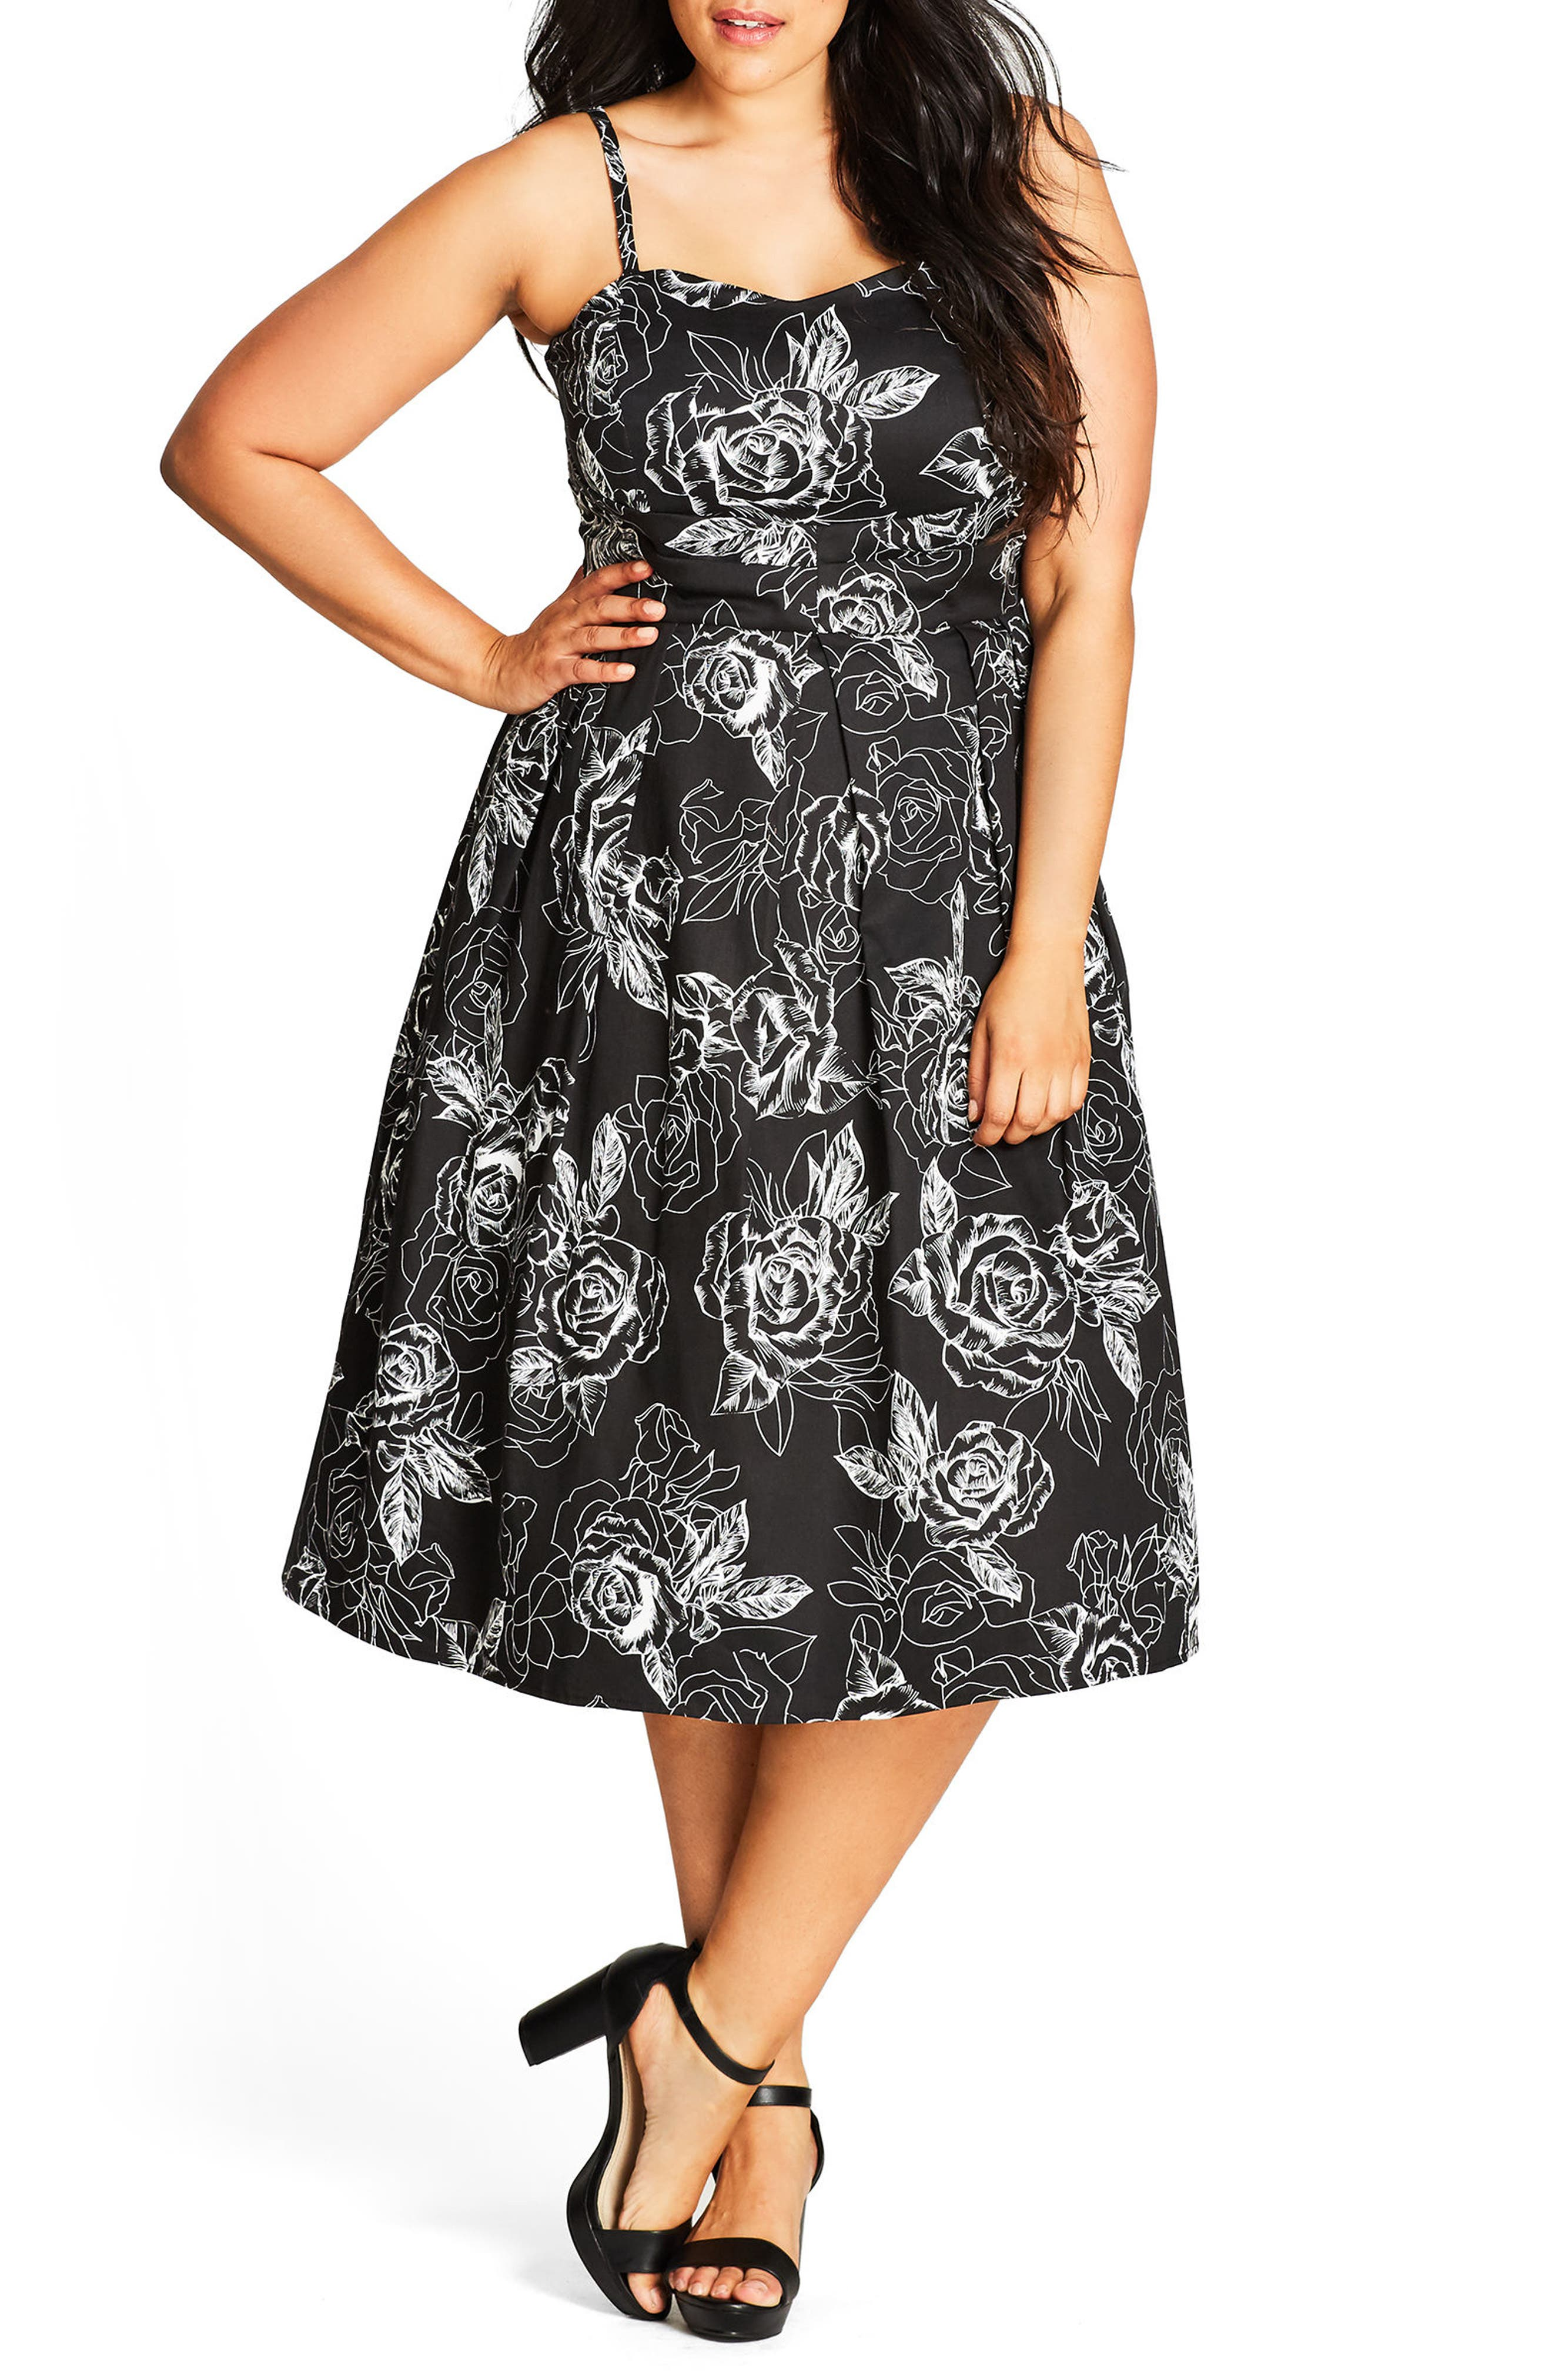 Alternate Image 1 Selected - City Chic Mono Garden Fit & Flare Dress (Plus Size)